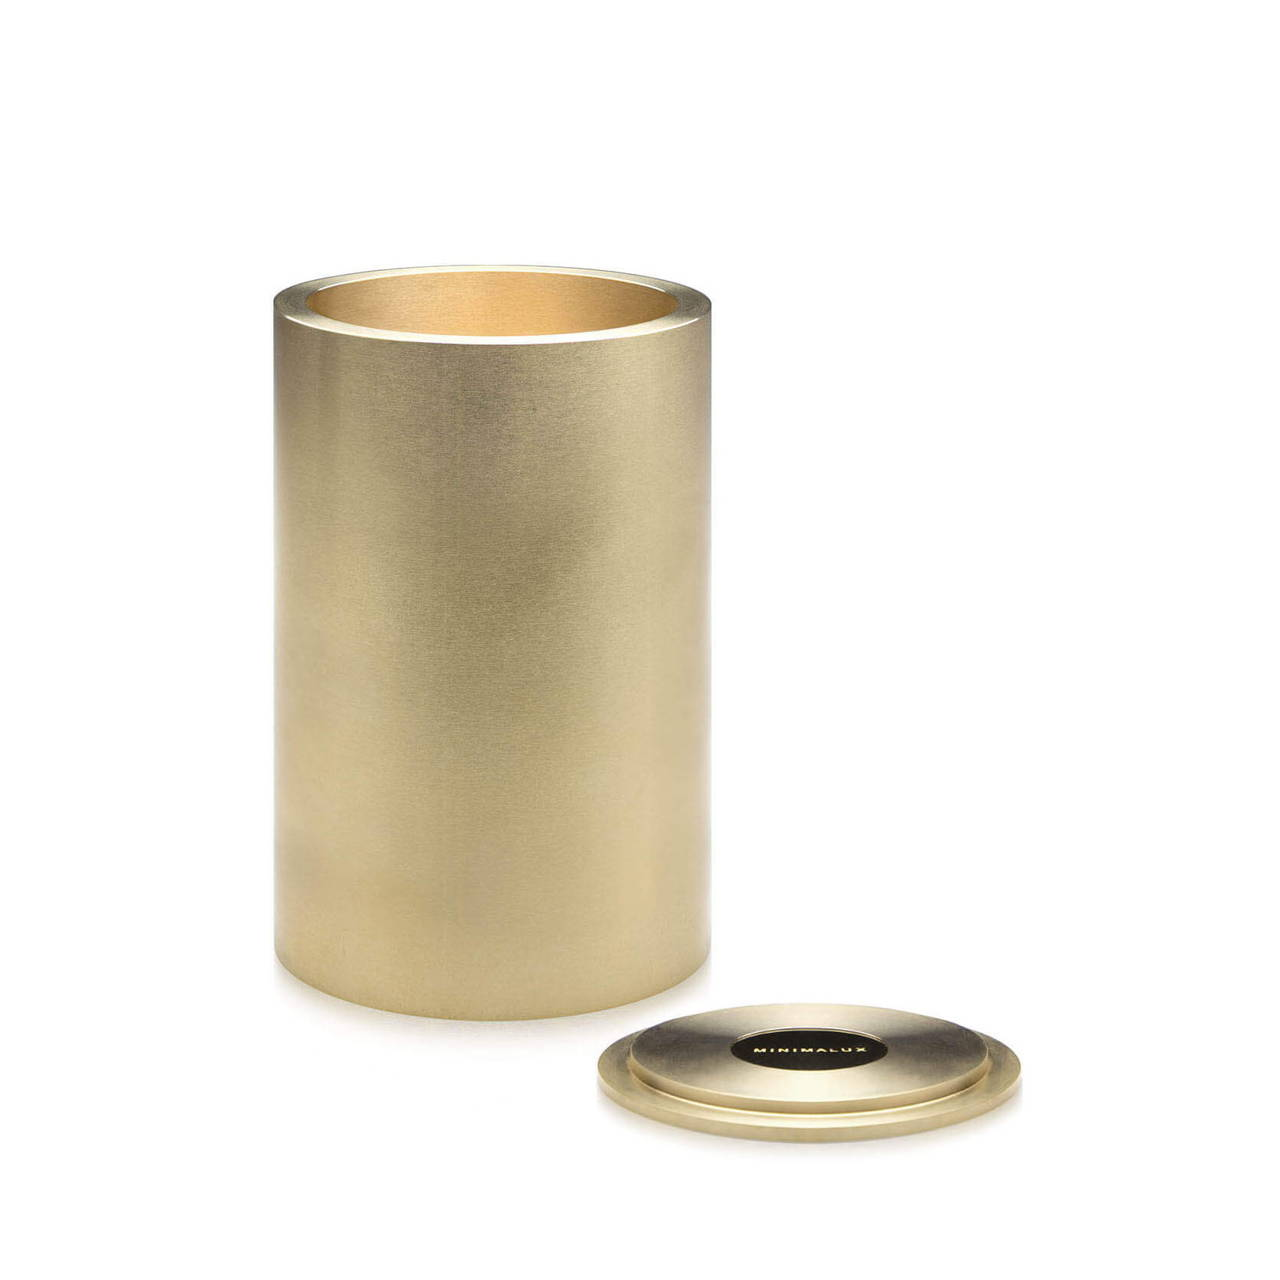 Brass Pot 90 with Lid off